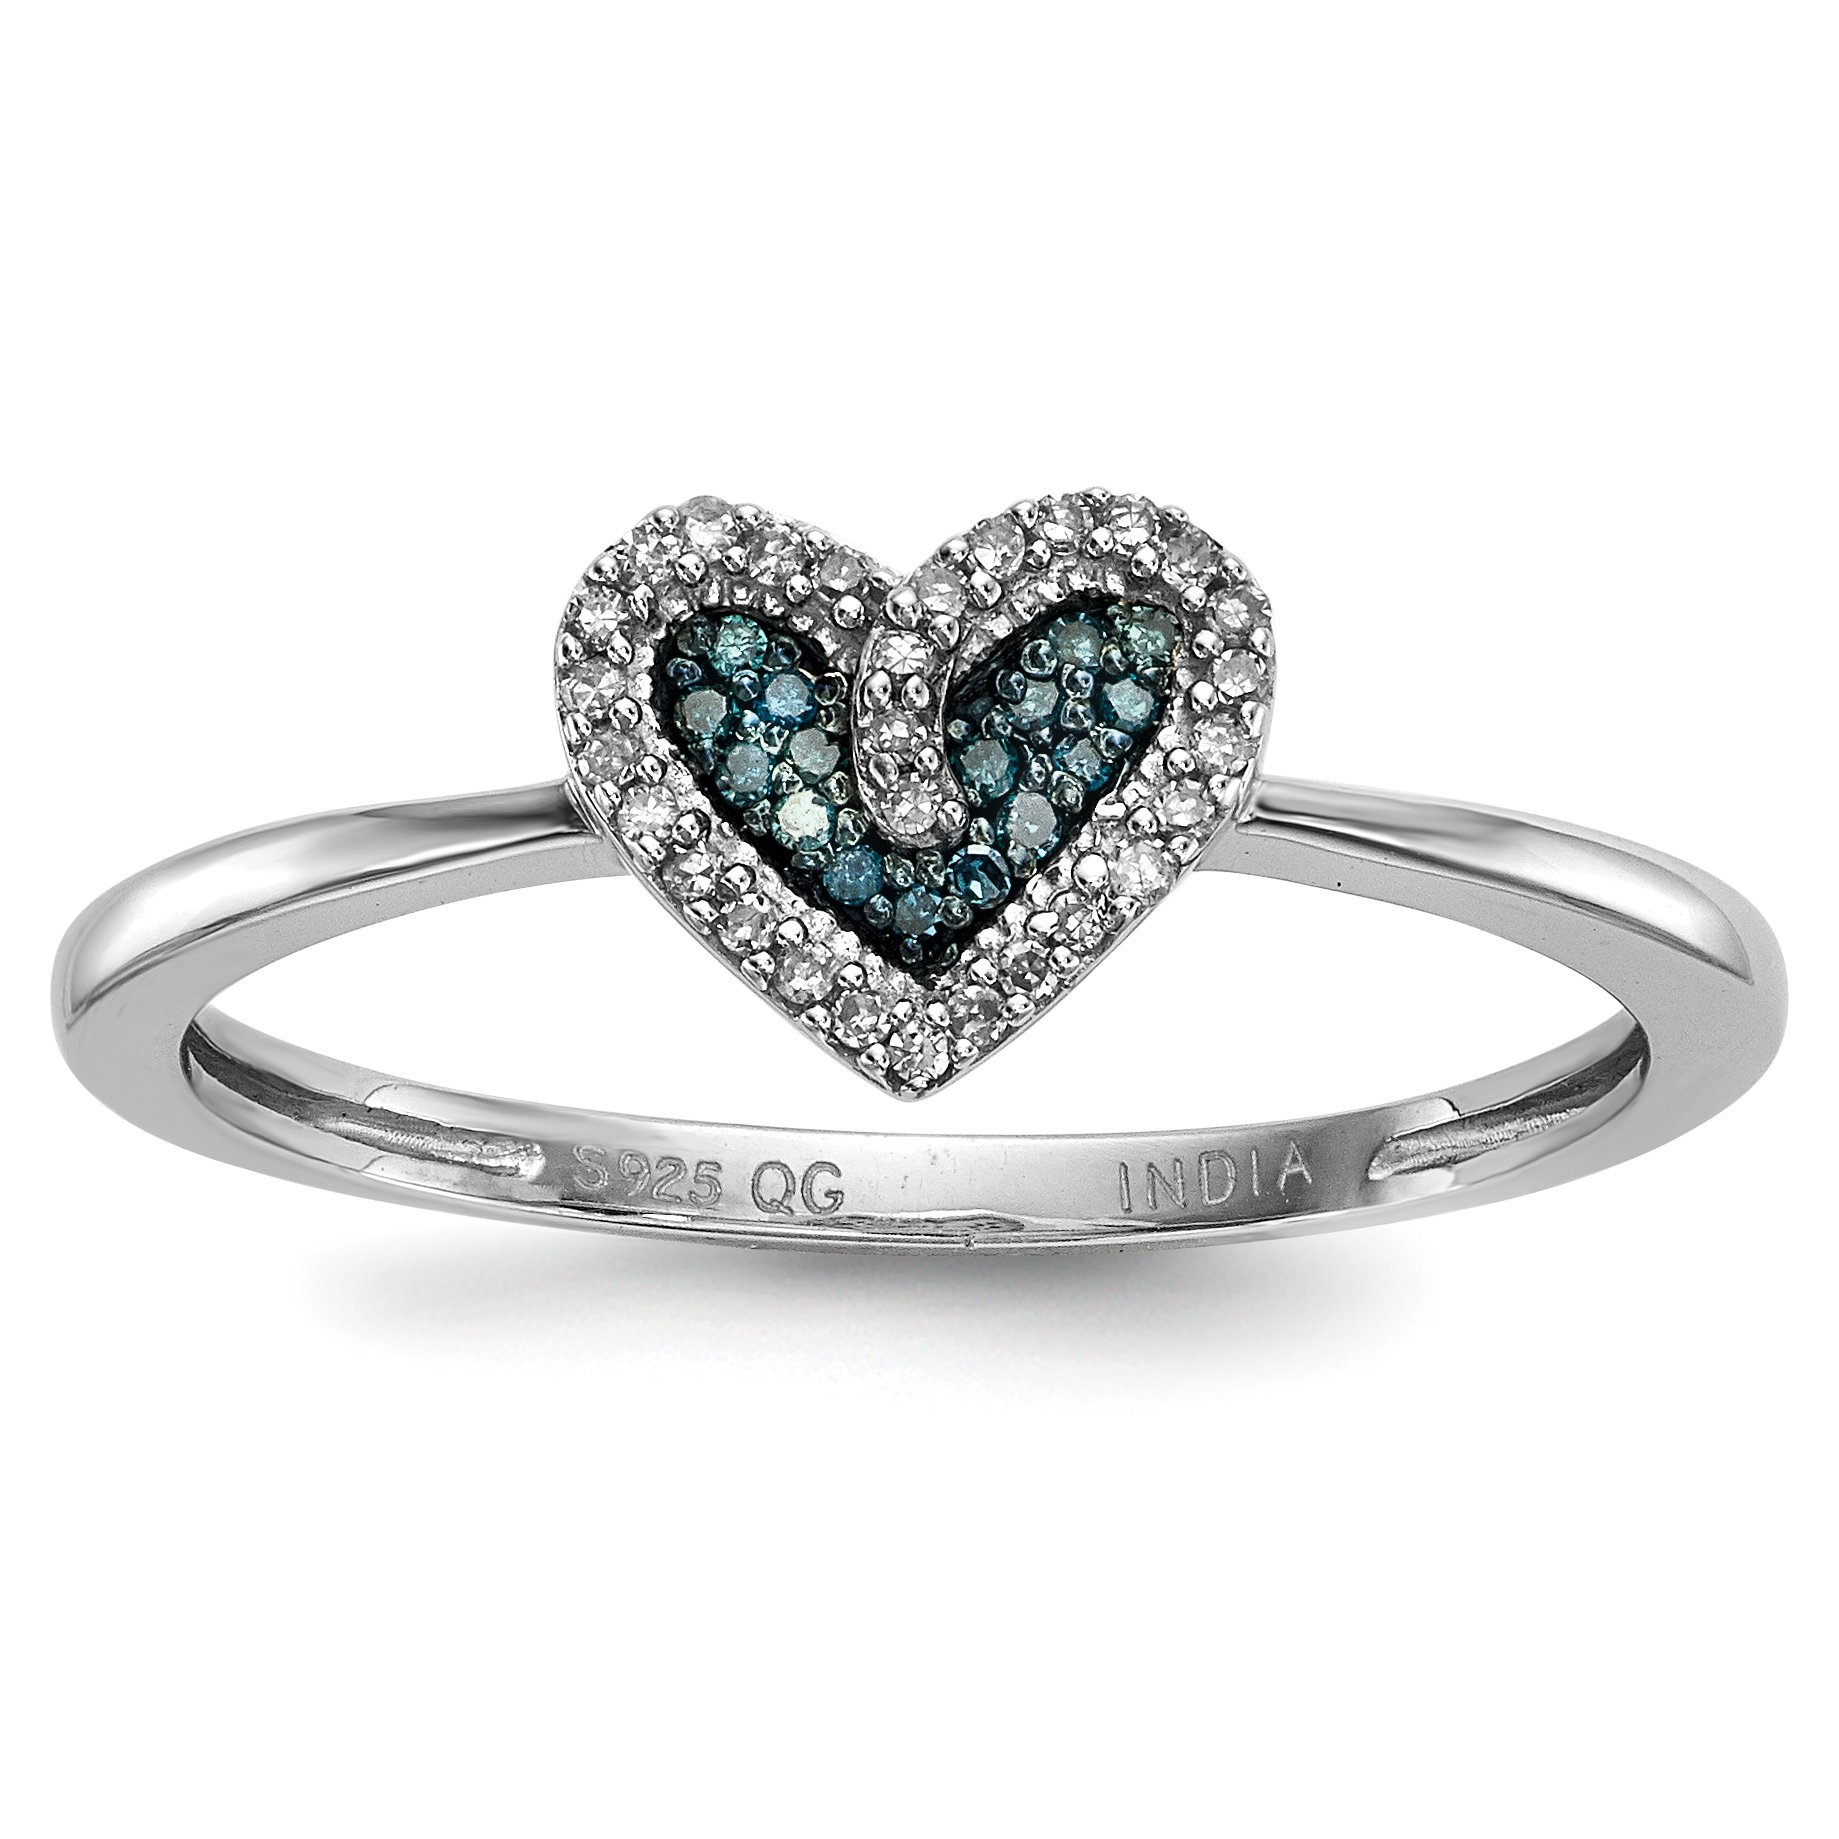 ICE CARATS 925 Sterling Silver Blue White Diamond Heart Band Ring Size 8.00 S/love Fine Jewelry Gift Set For Women Heart